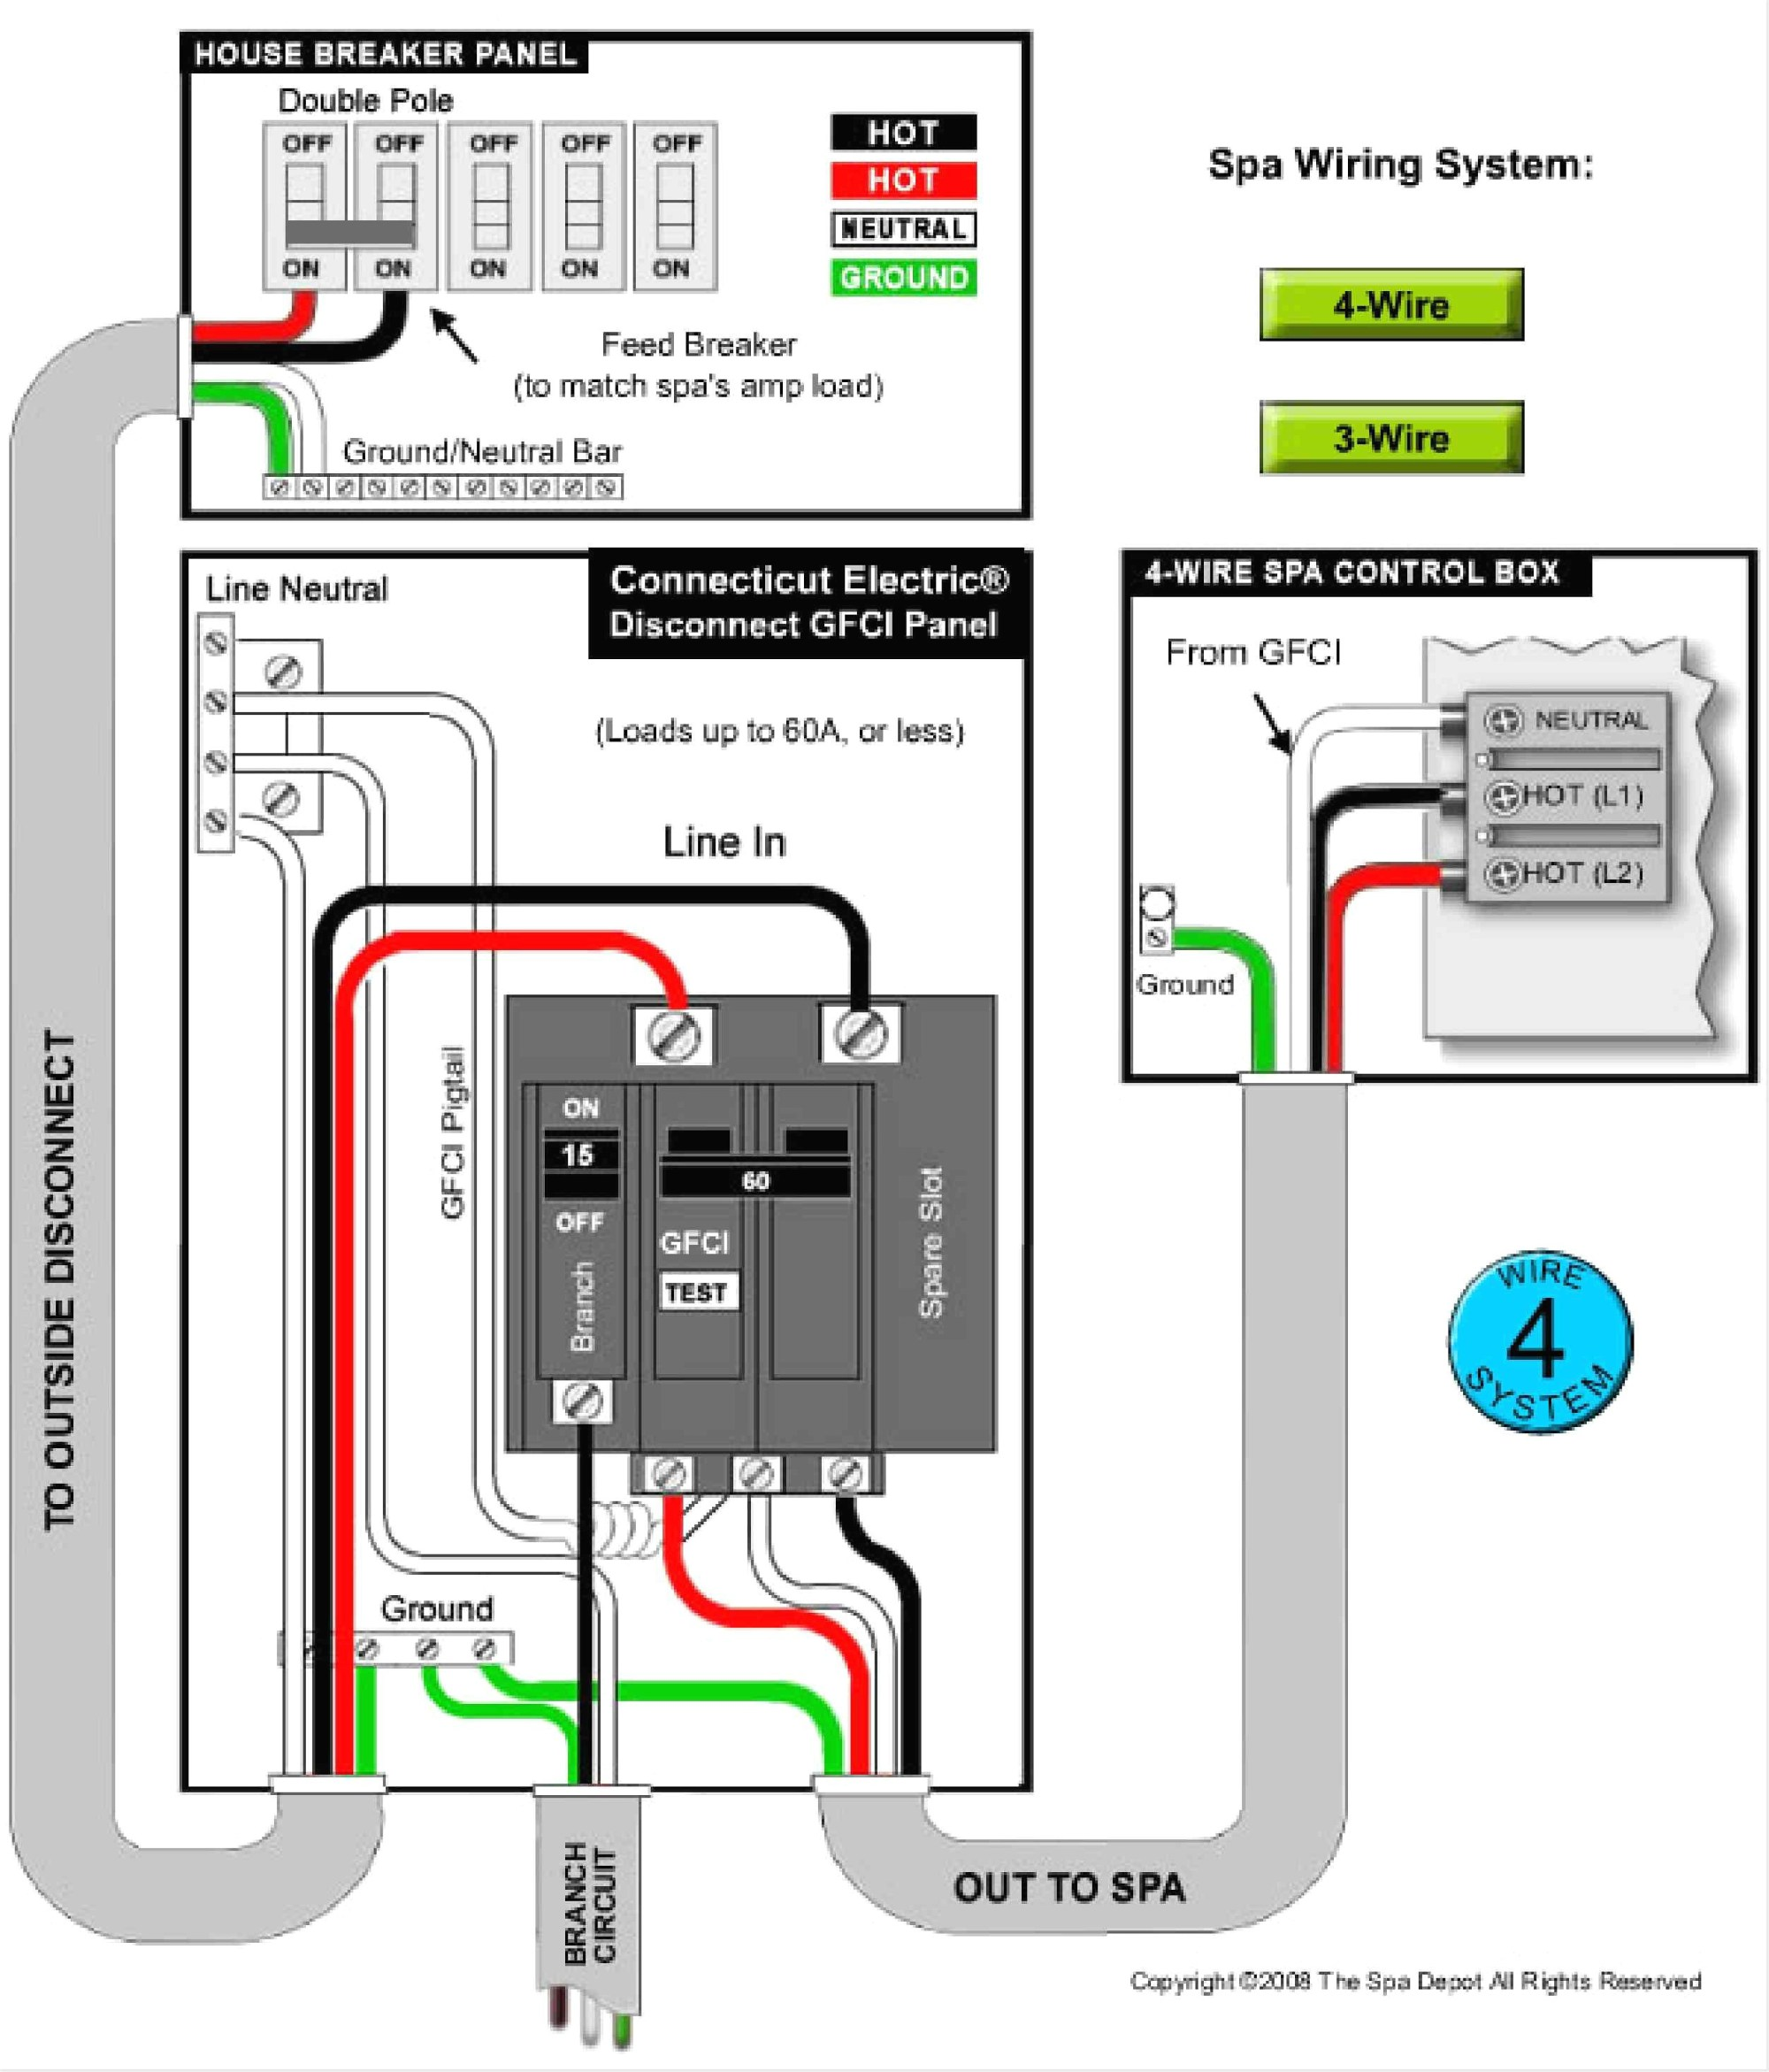 hight resolution of thermo swim spa wiring diagram wiring diagram details garden spa wiring diagram